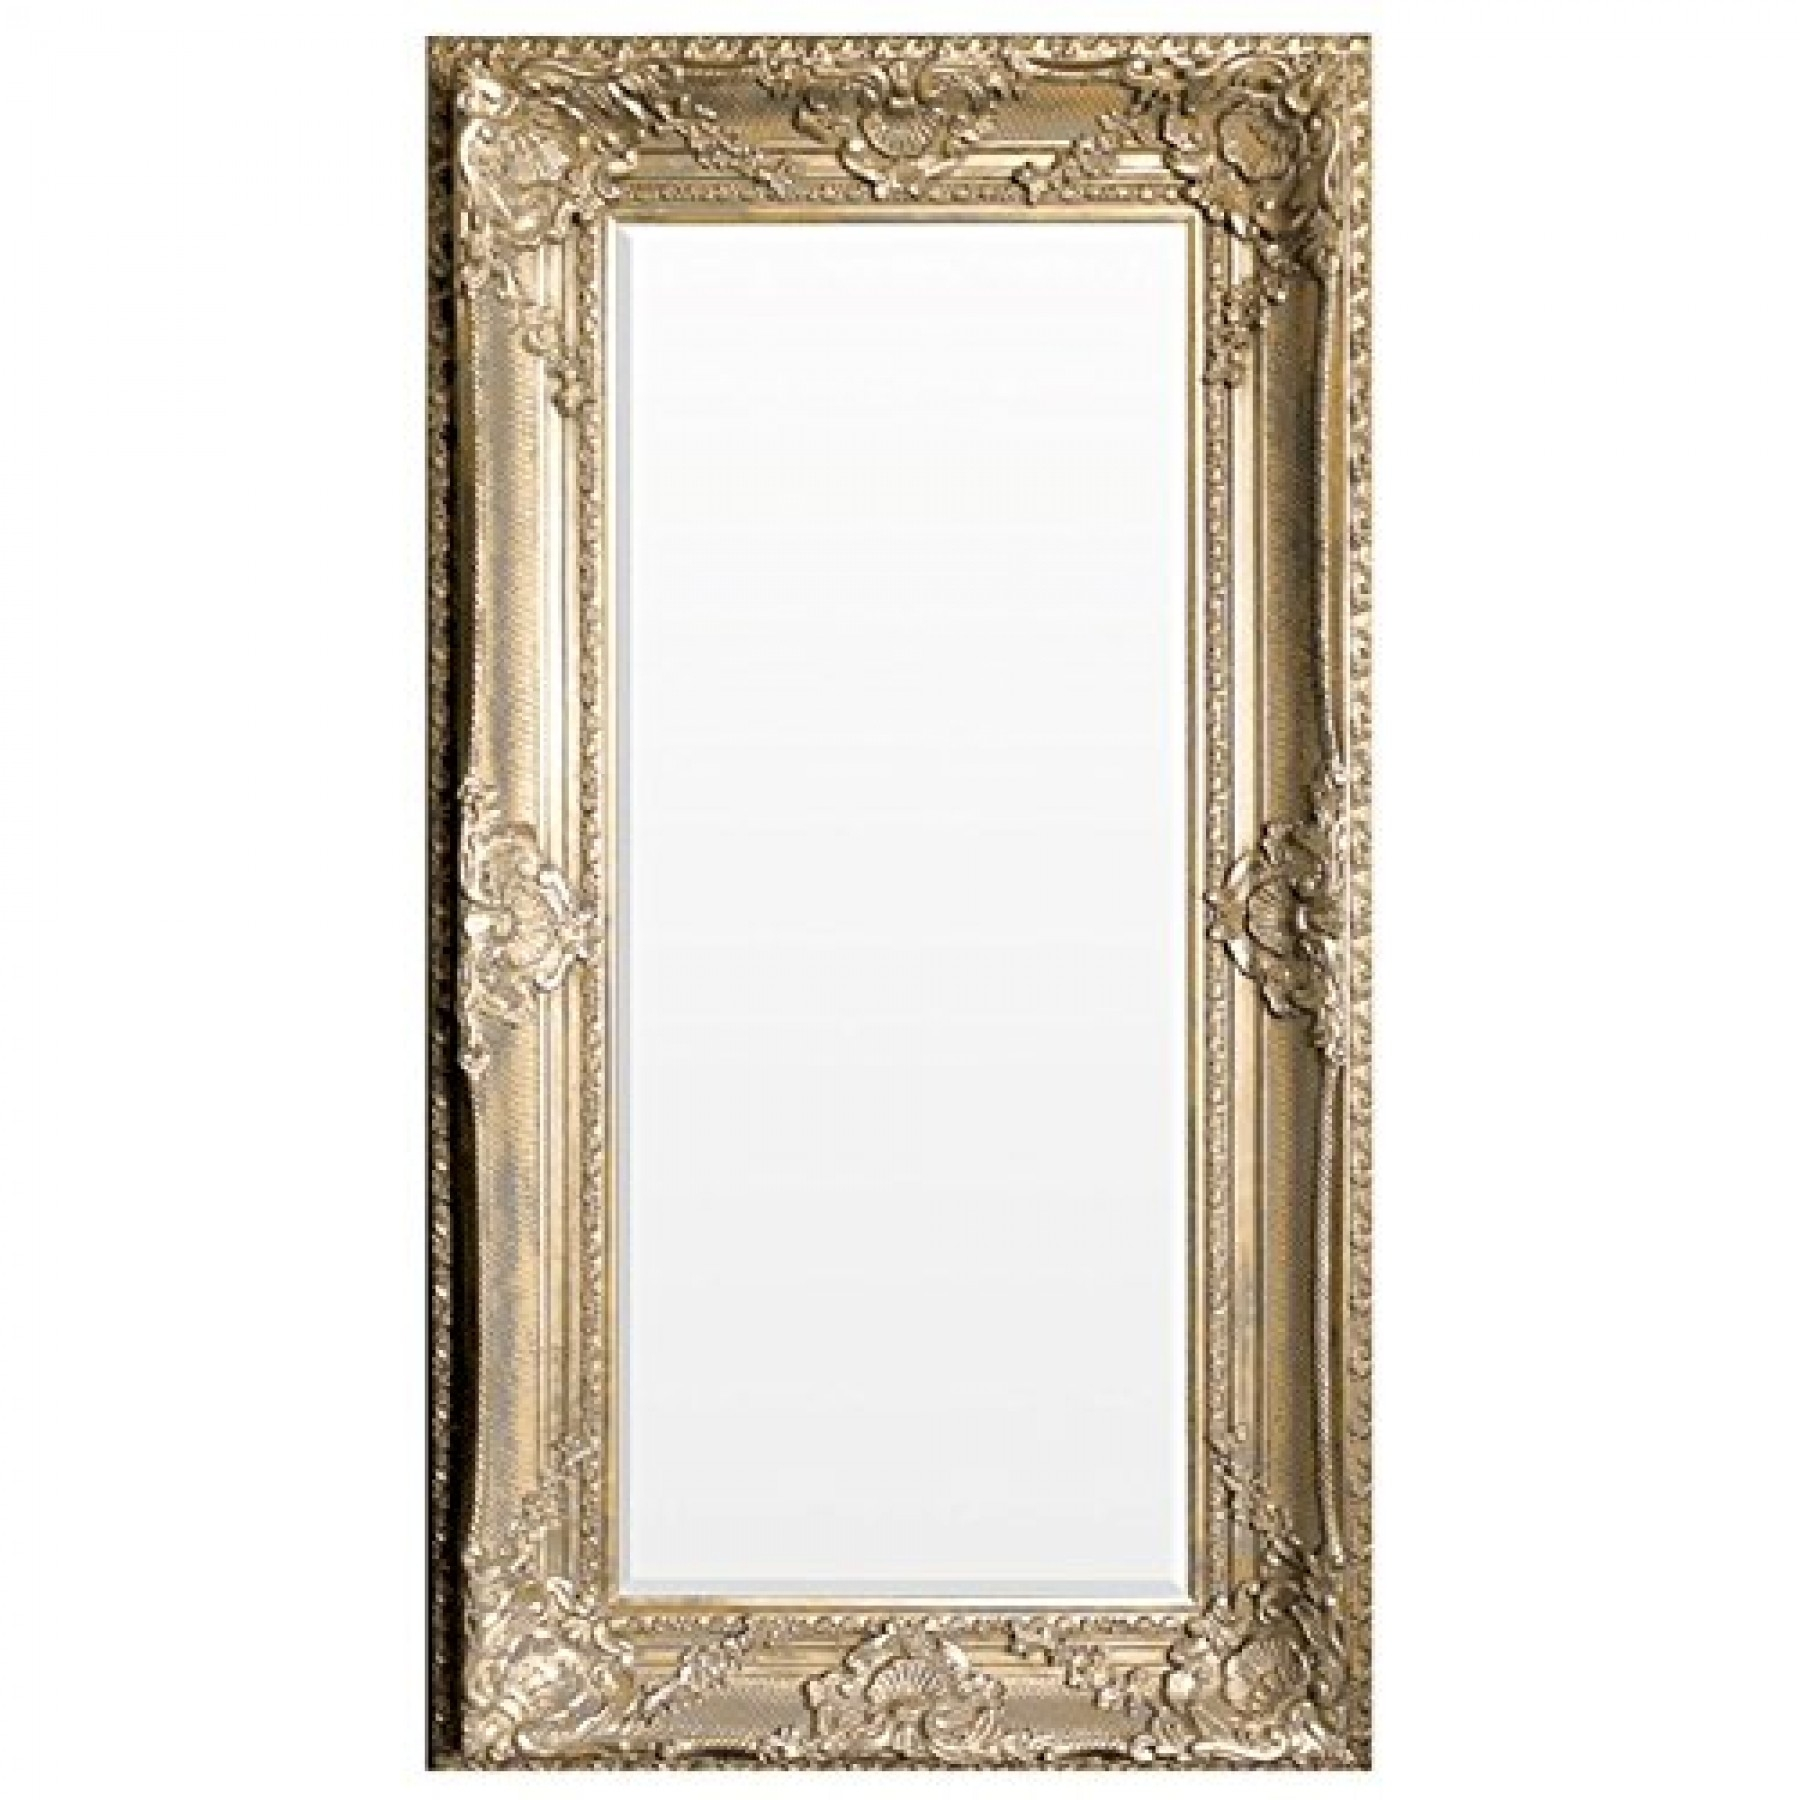 Ornate Shab Chic Mirror Extra Large In Gold Ornate Mirror (Image 10 of 15)